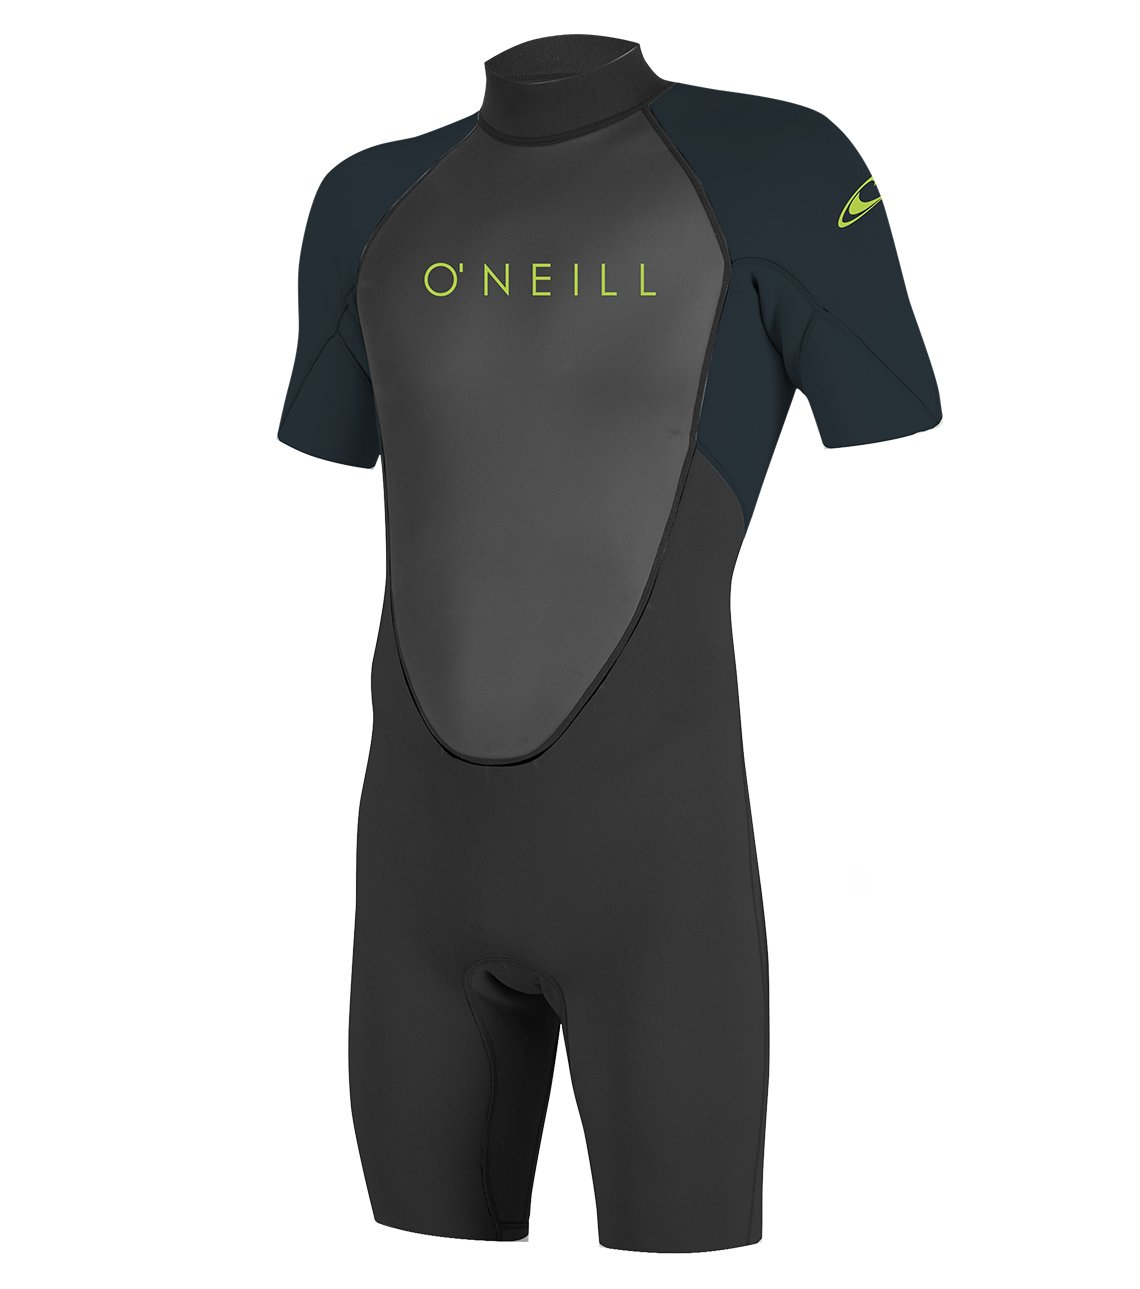 O'Neill Youth Reactor-2 2mm Back Zip Short Sleeve Spring Wetsuit, Black/Slate, 14 by O'Neill Wetsuits